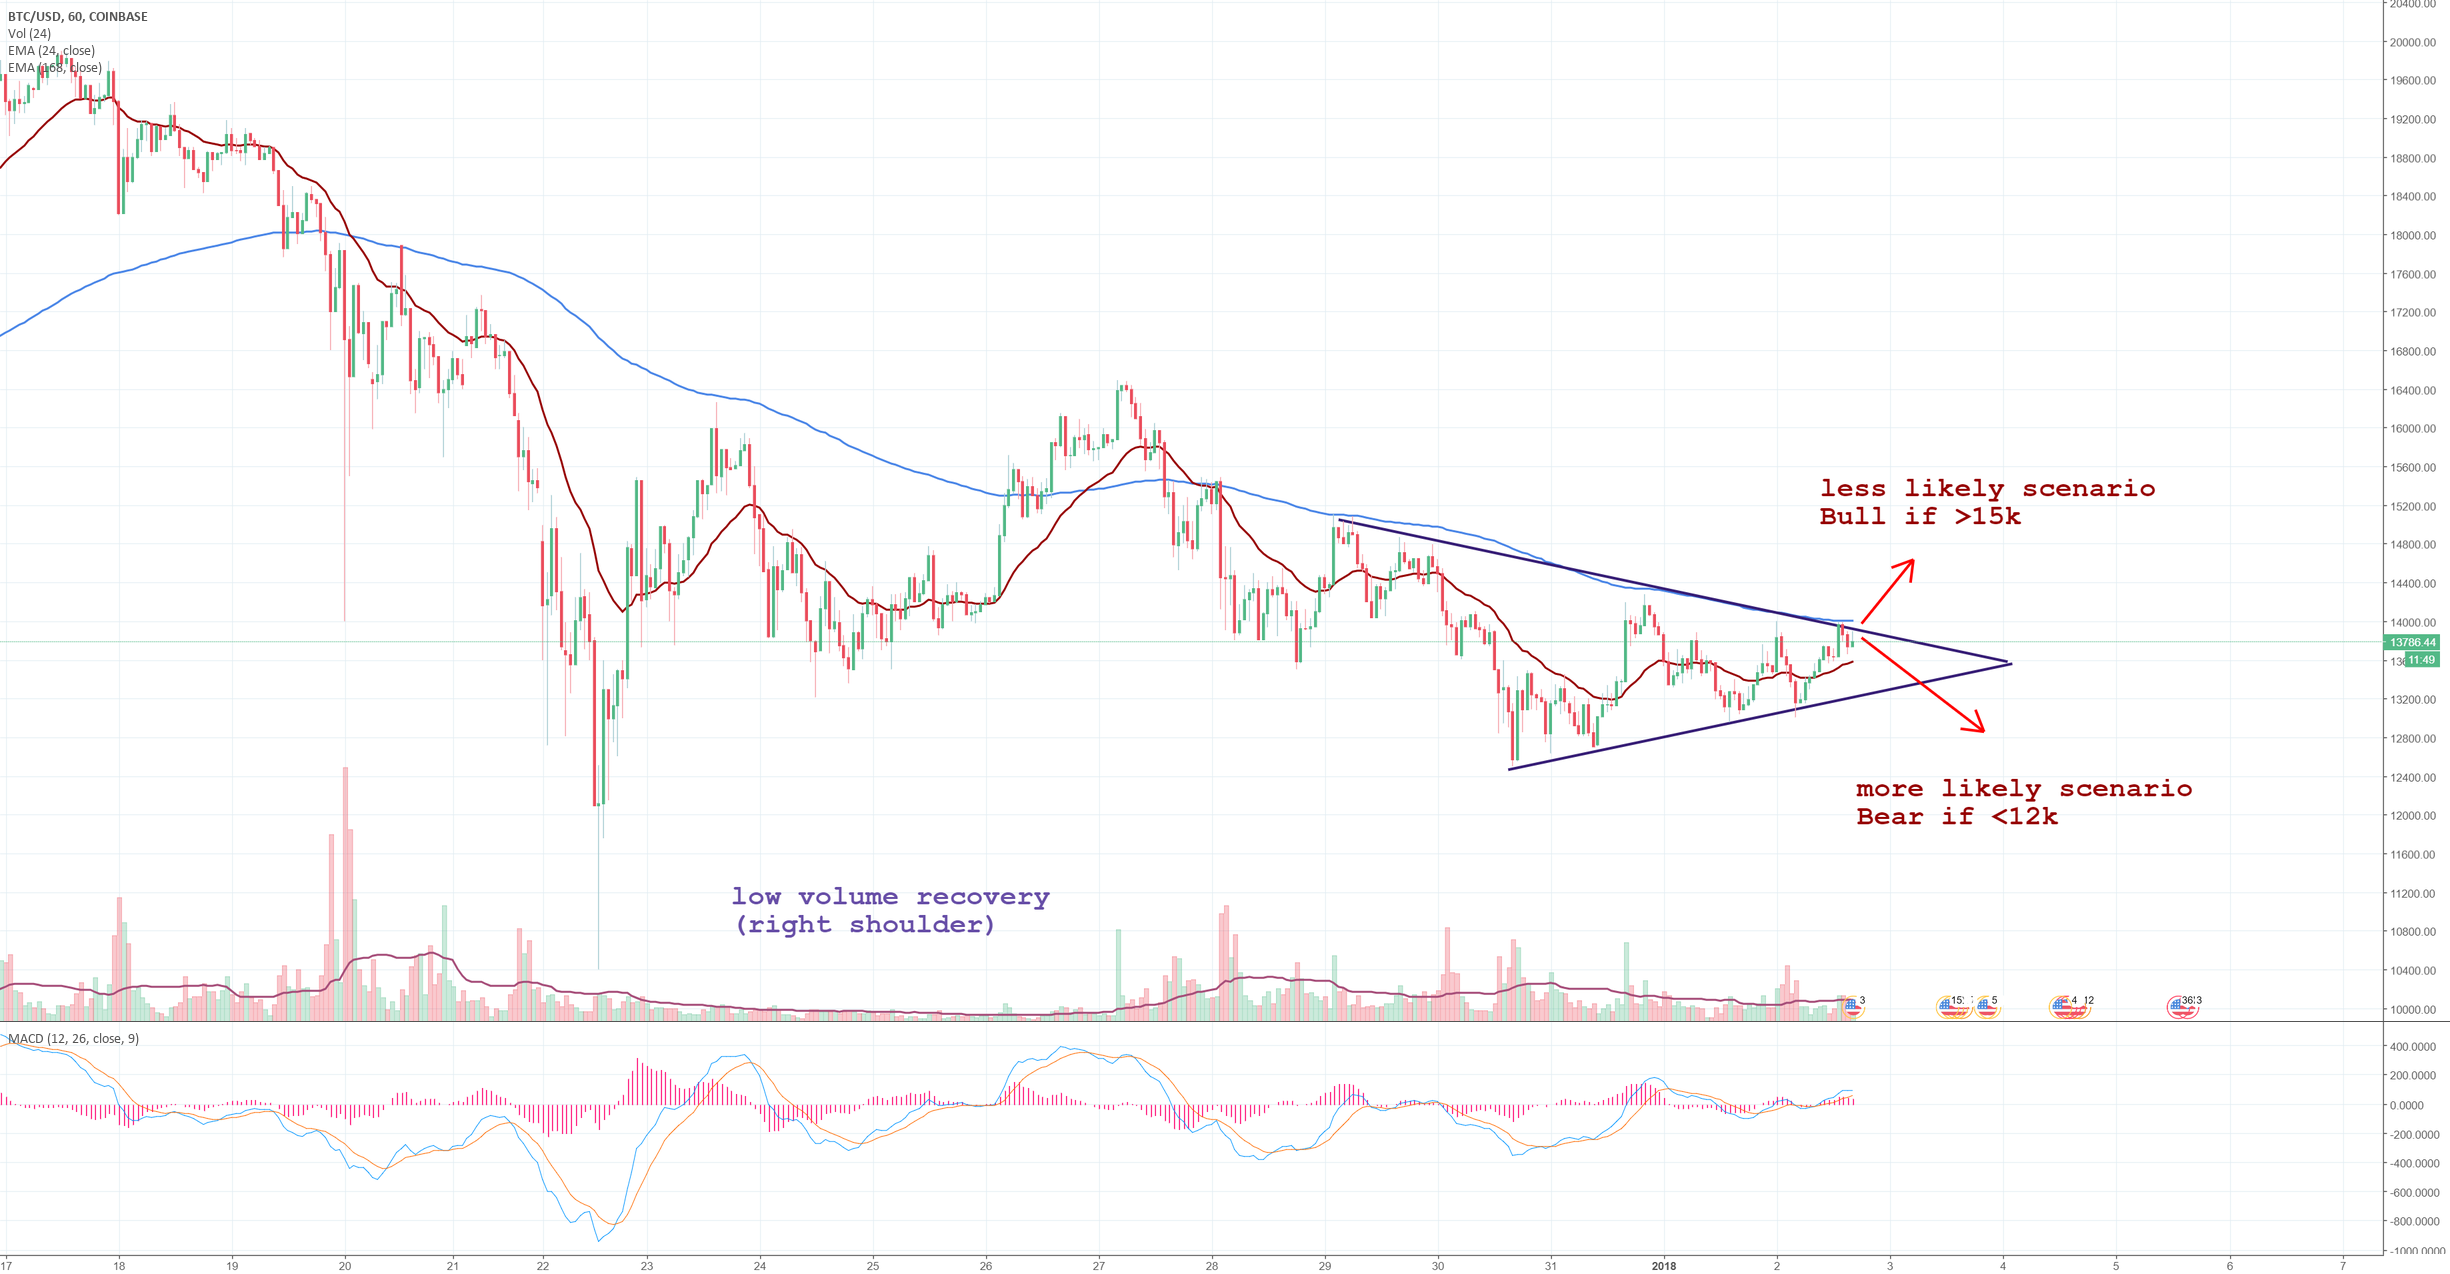 Bitcoin critical moment, symmetrical triangle, & possible crash